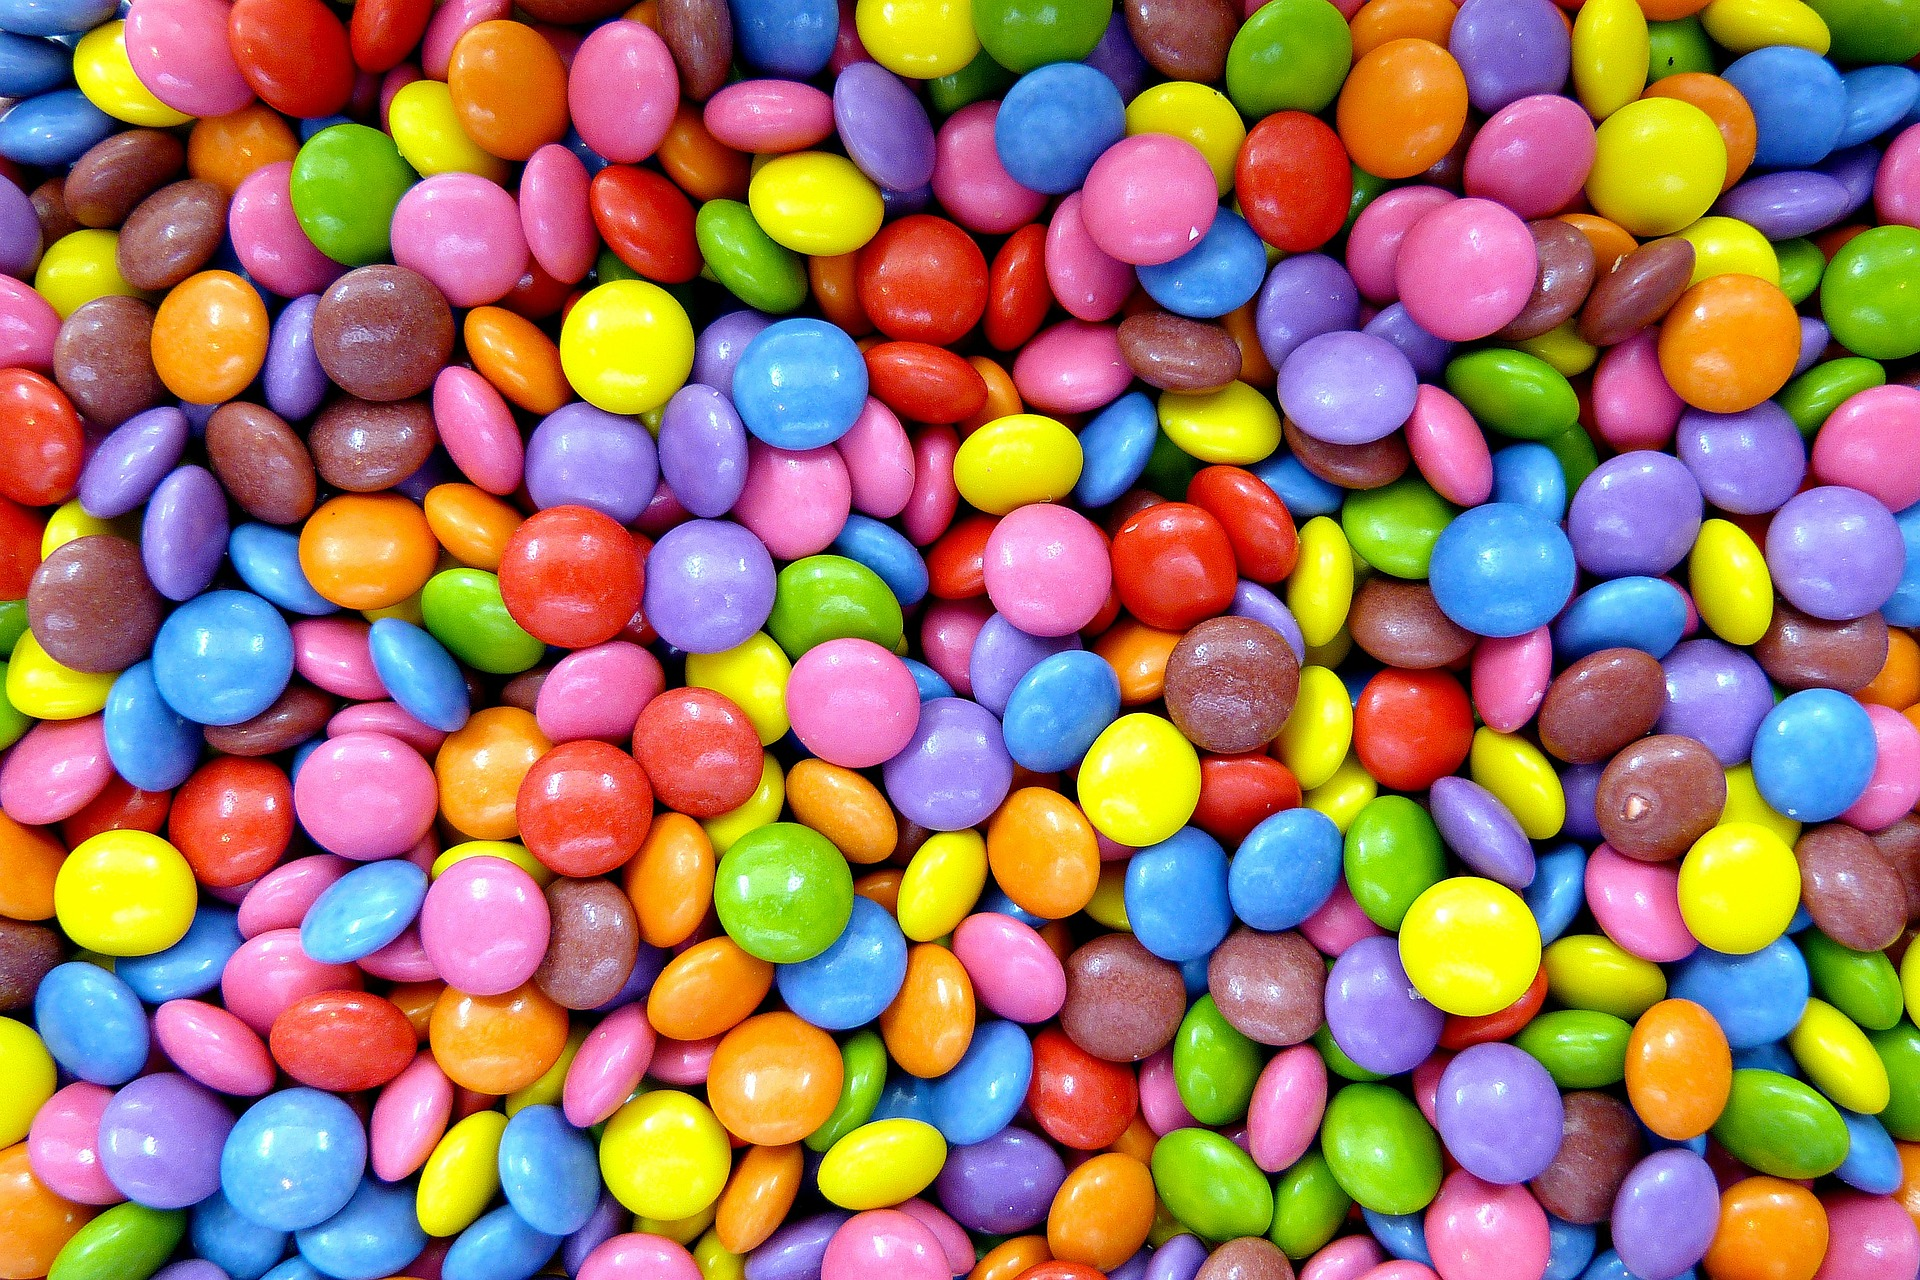 Multi-colored Smarties candy.